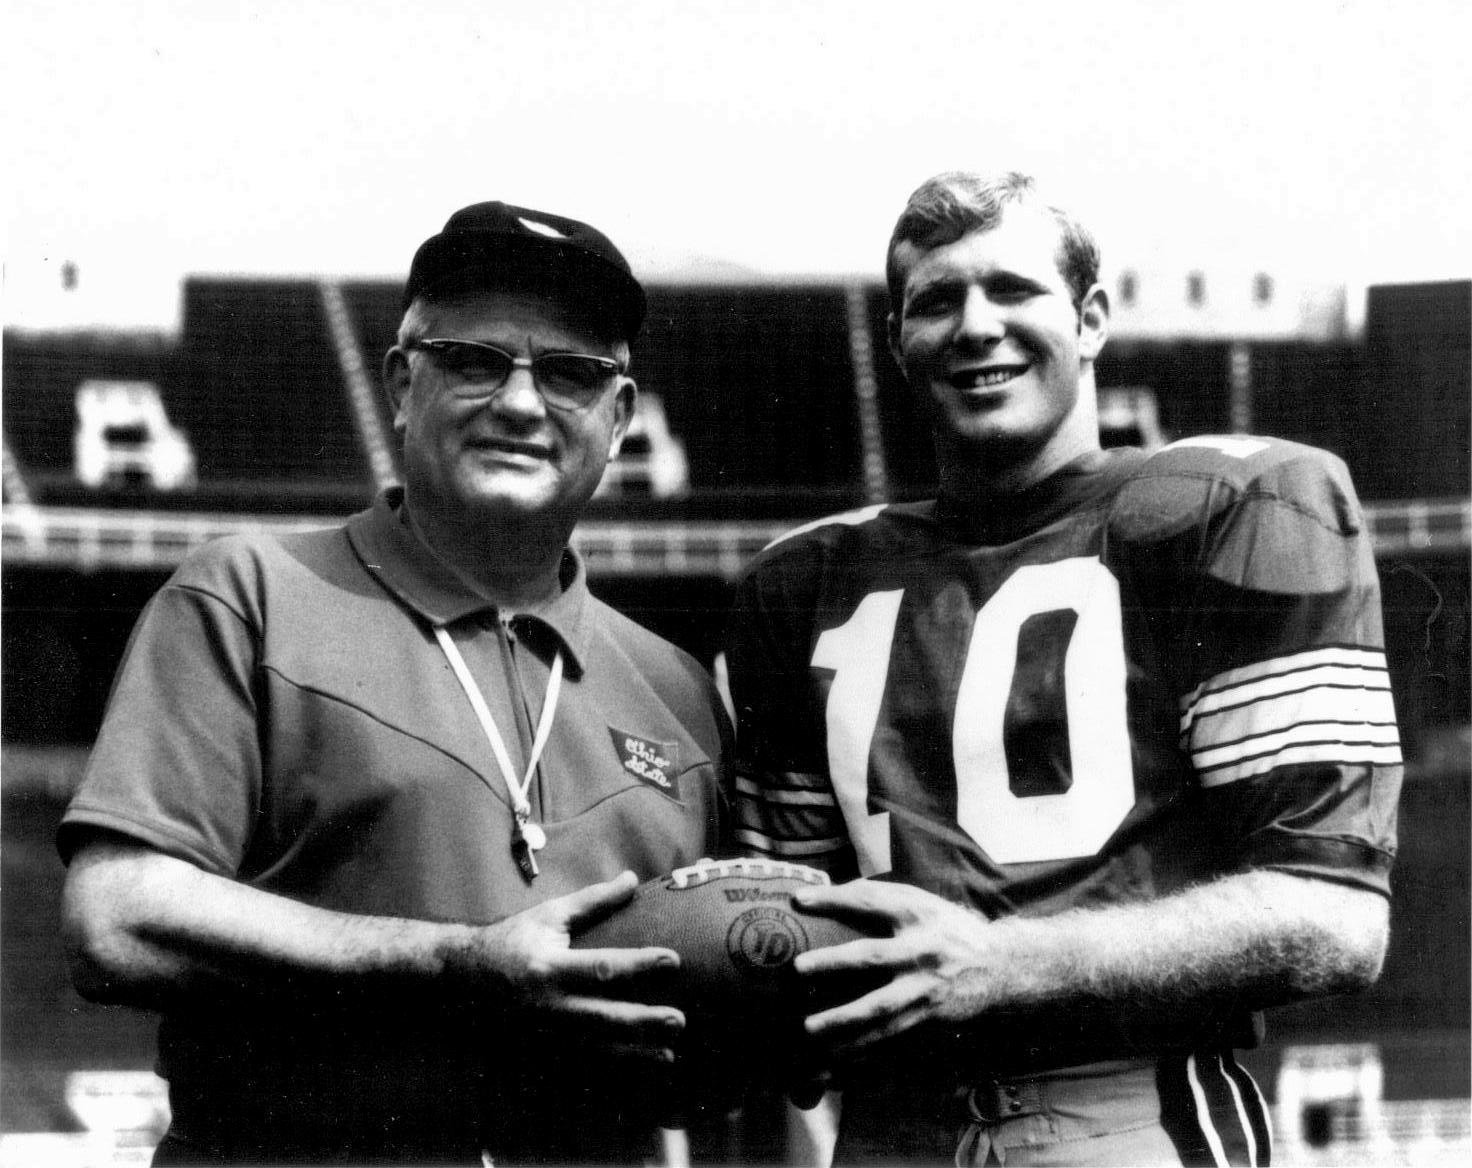 Woody Hayes and Rex Kern Vintage 1968 Ohio State 8x10 Photo Mint Condition